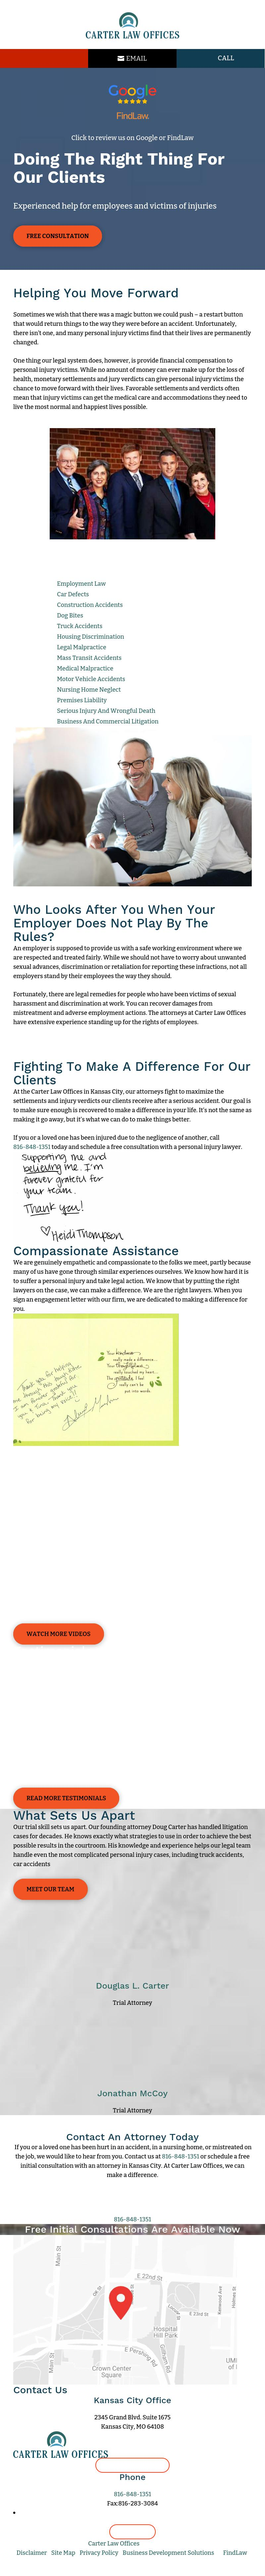 Carter Law Offices - Kansas City MO Lawyers